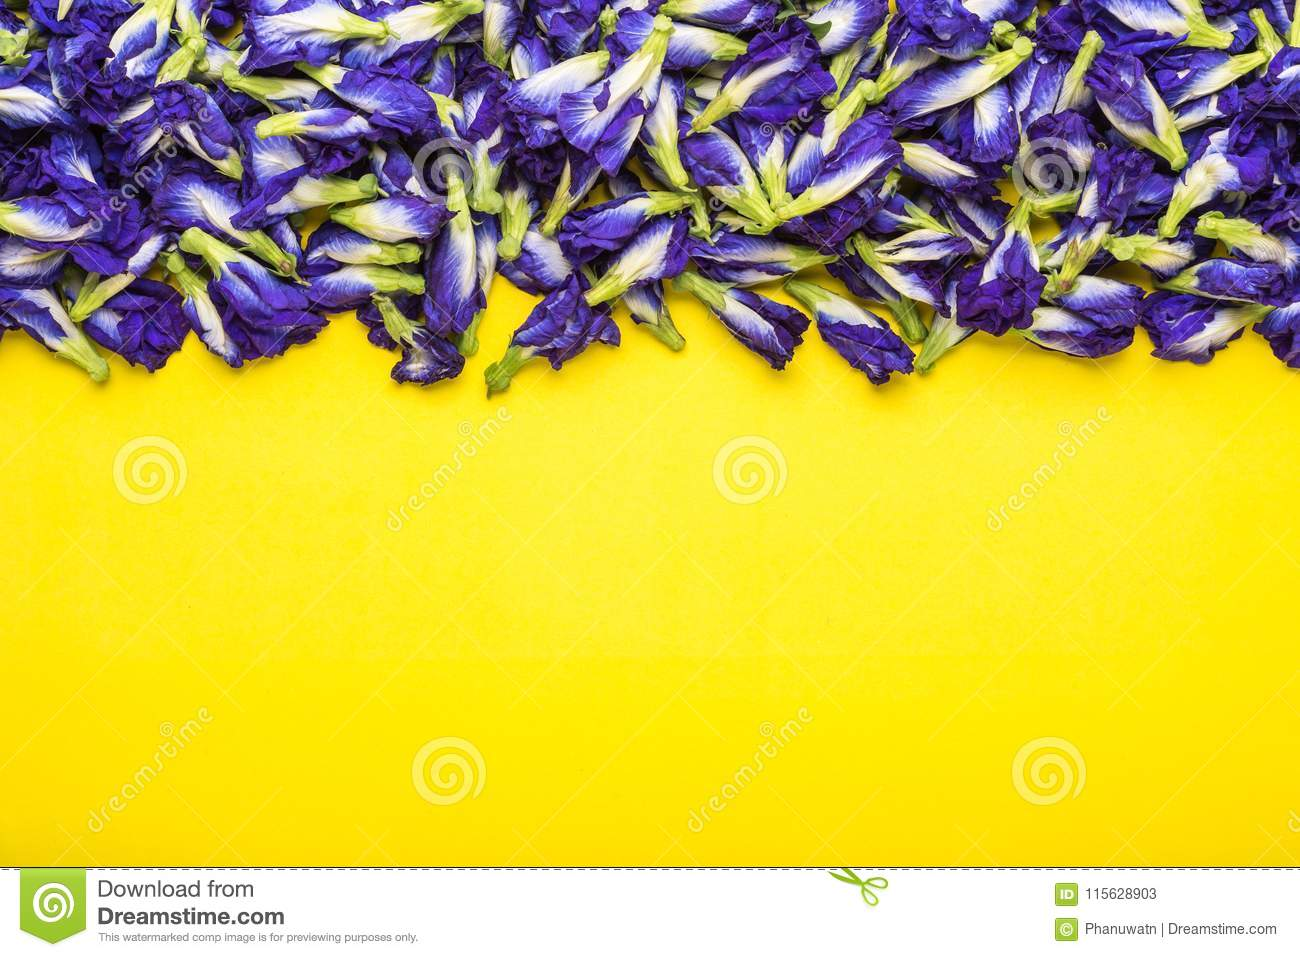 Fresh Purple Butterfly Pea Flower On Yellow Background Food Or